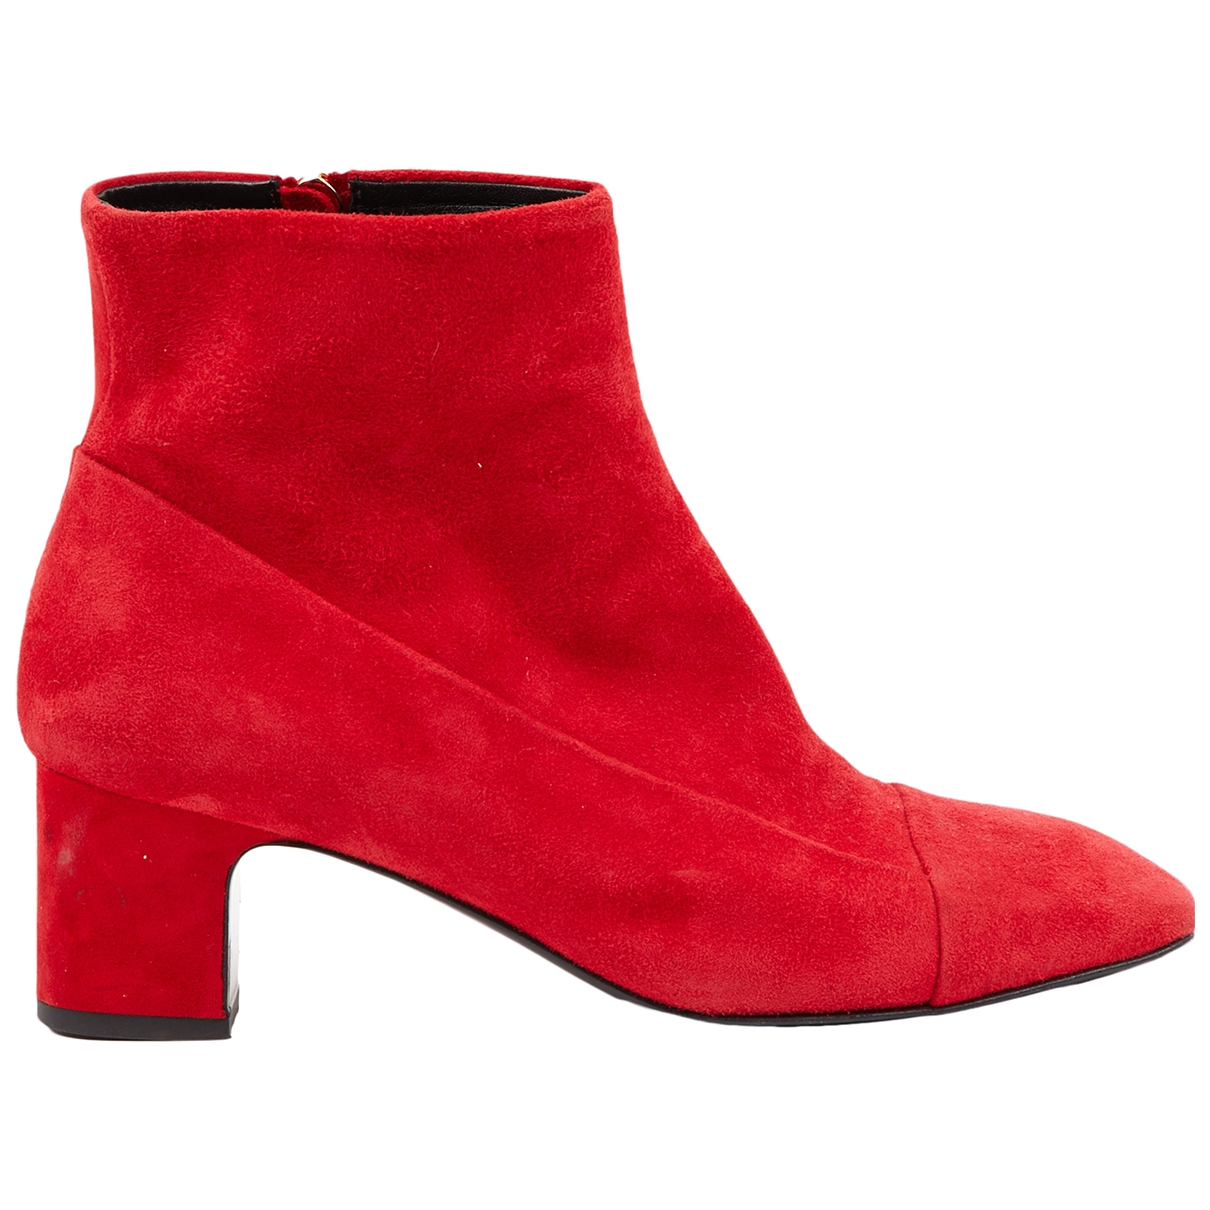 Hermès \N Red Suede Ankle boots for Women 36.5 EU